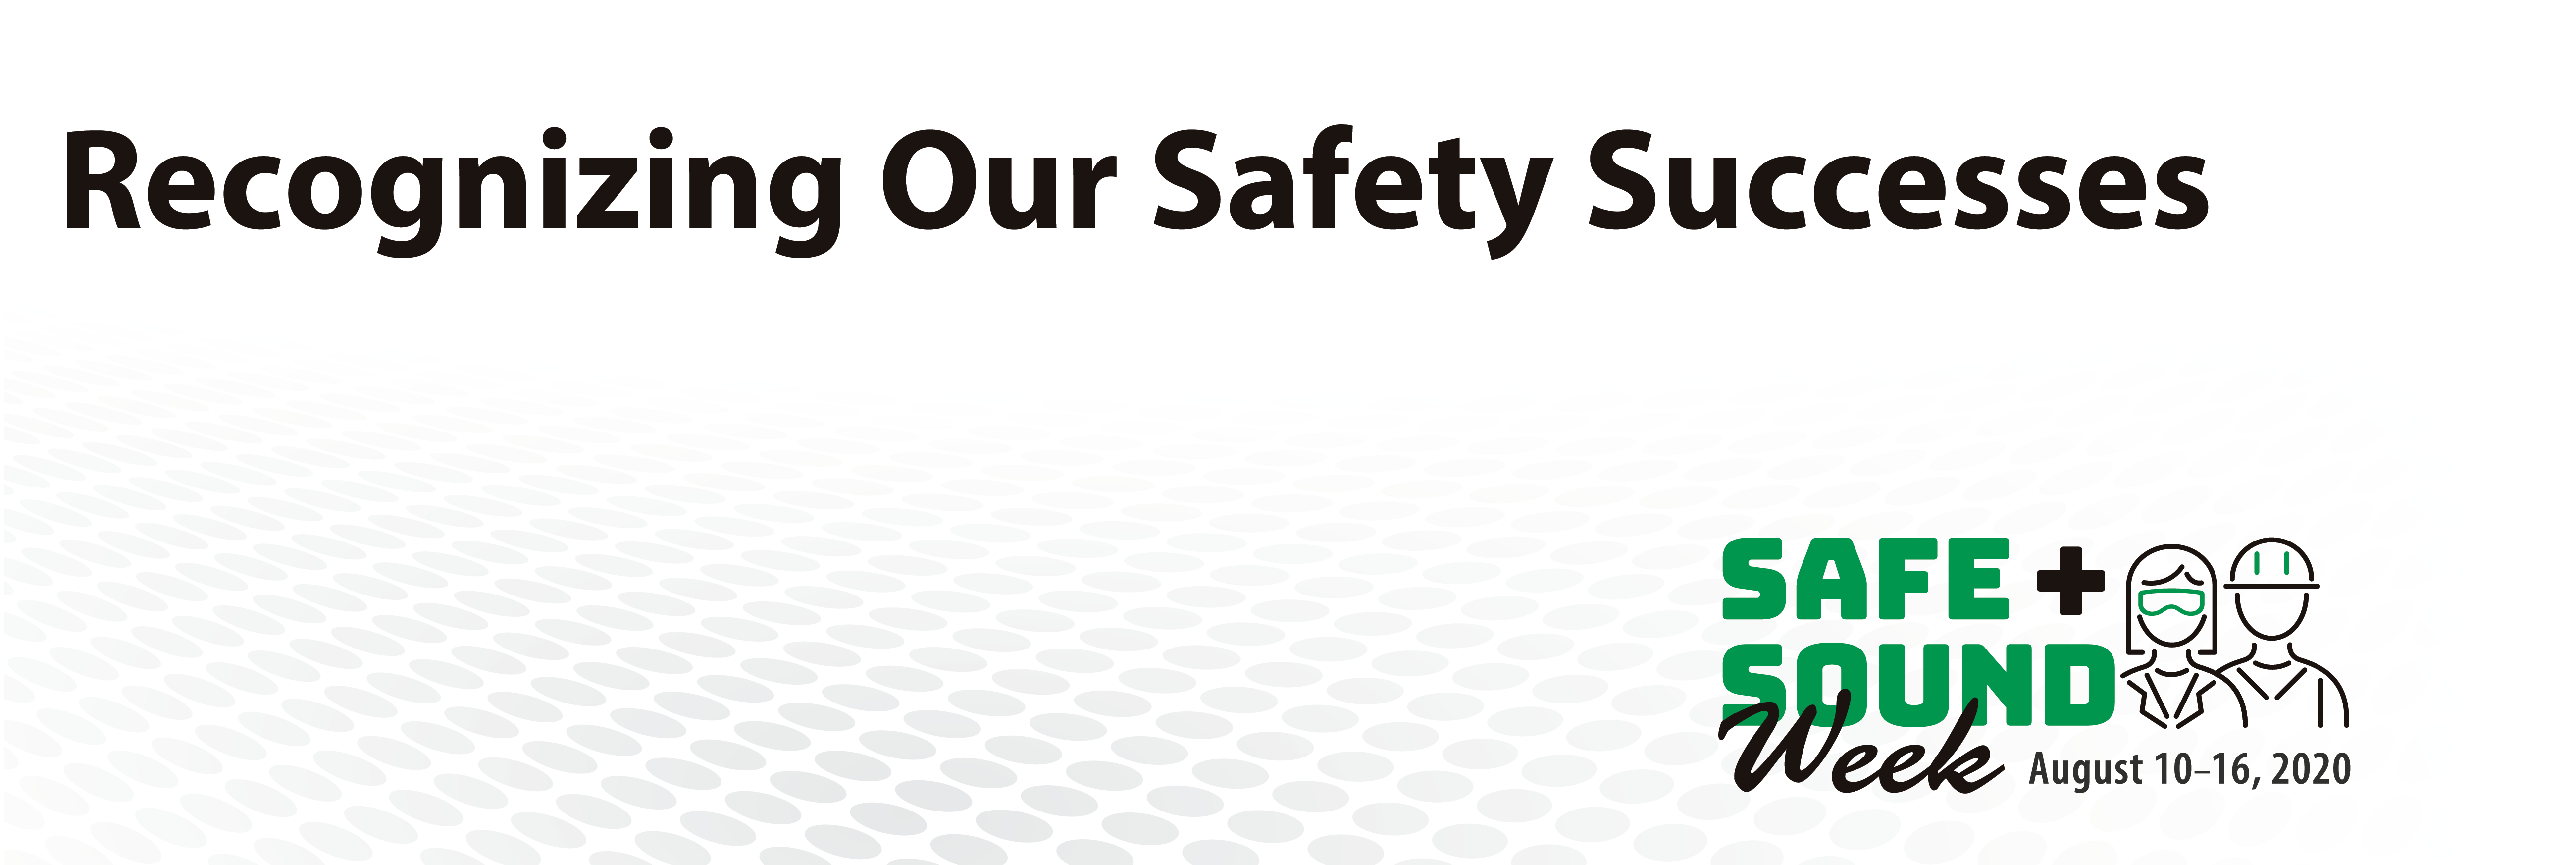 Customizable Banner - Recognizing our Safety Successes - Safe + Sound Week - August 10-16, 2020